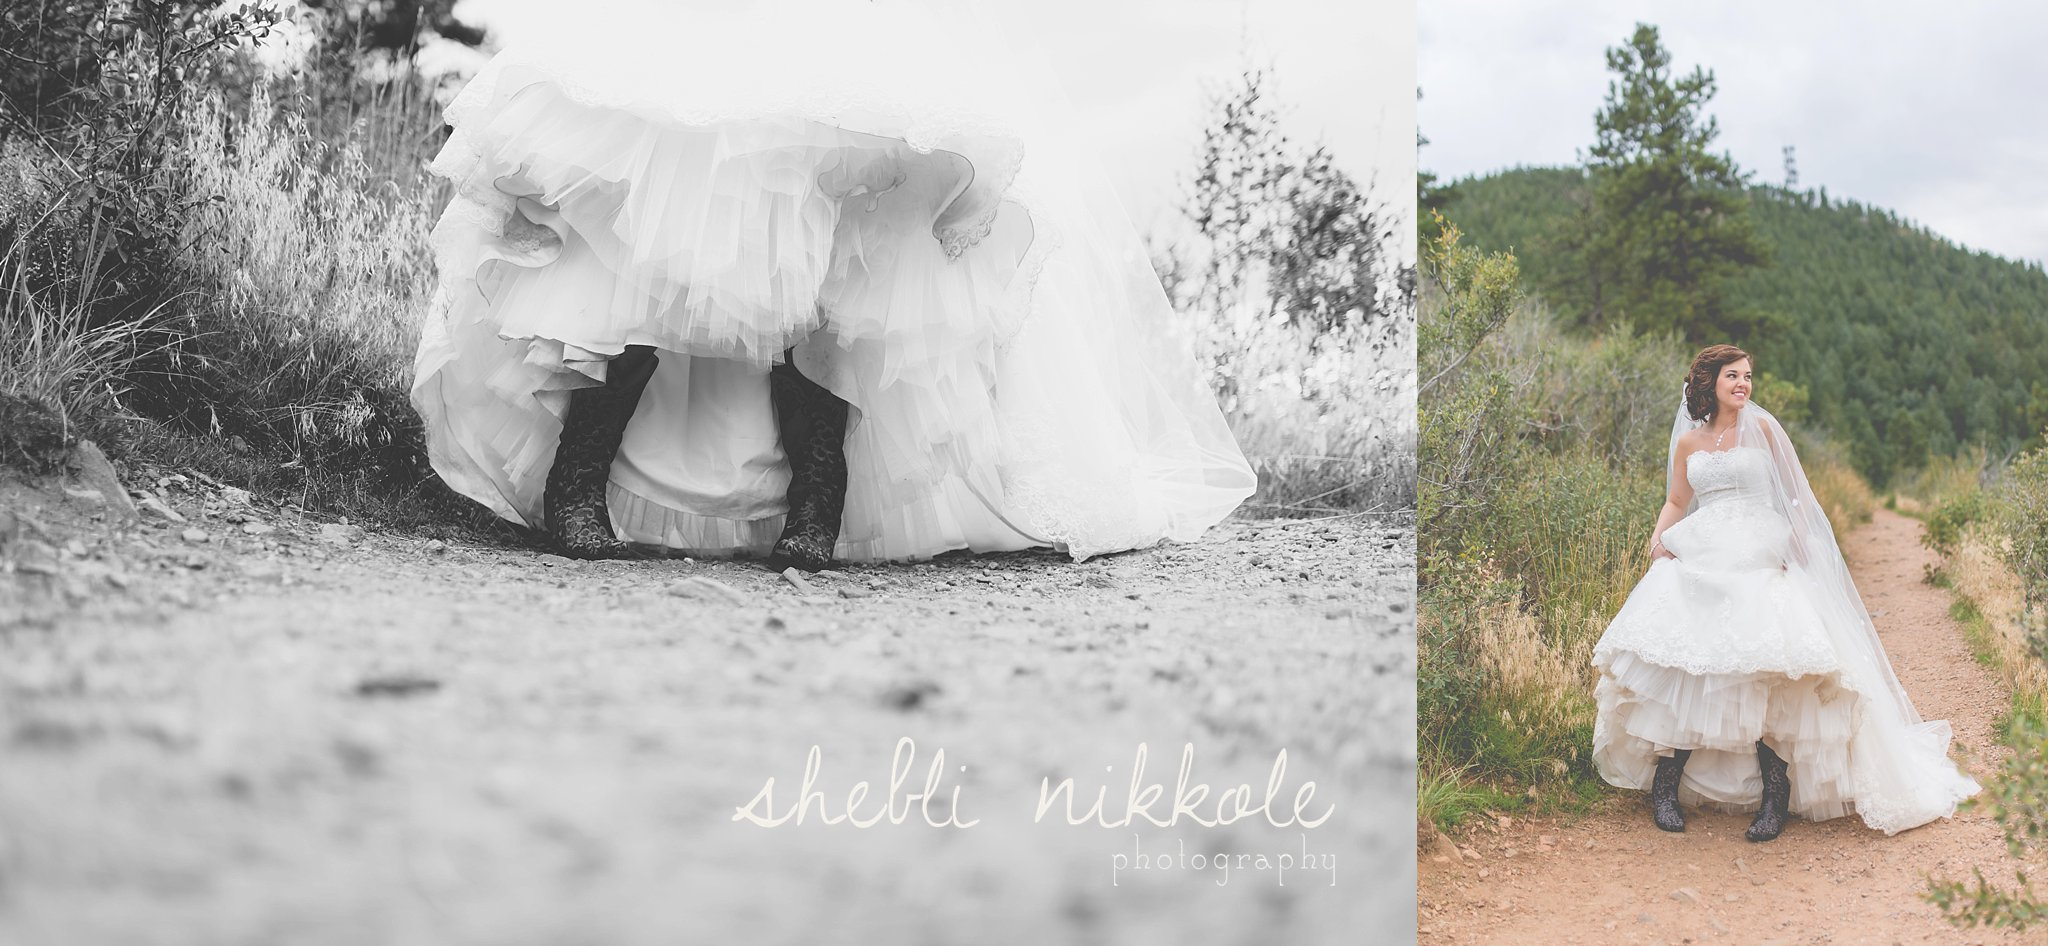 ©shebli nikkole photography 2014